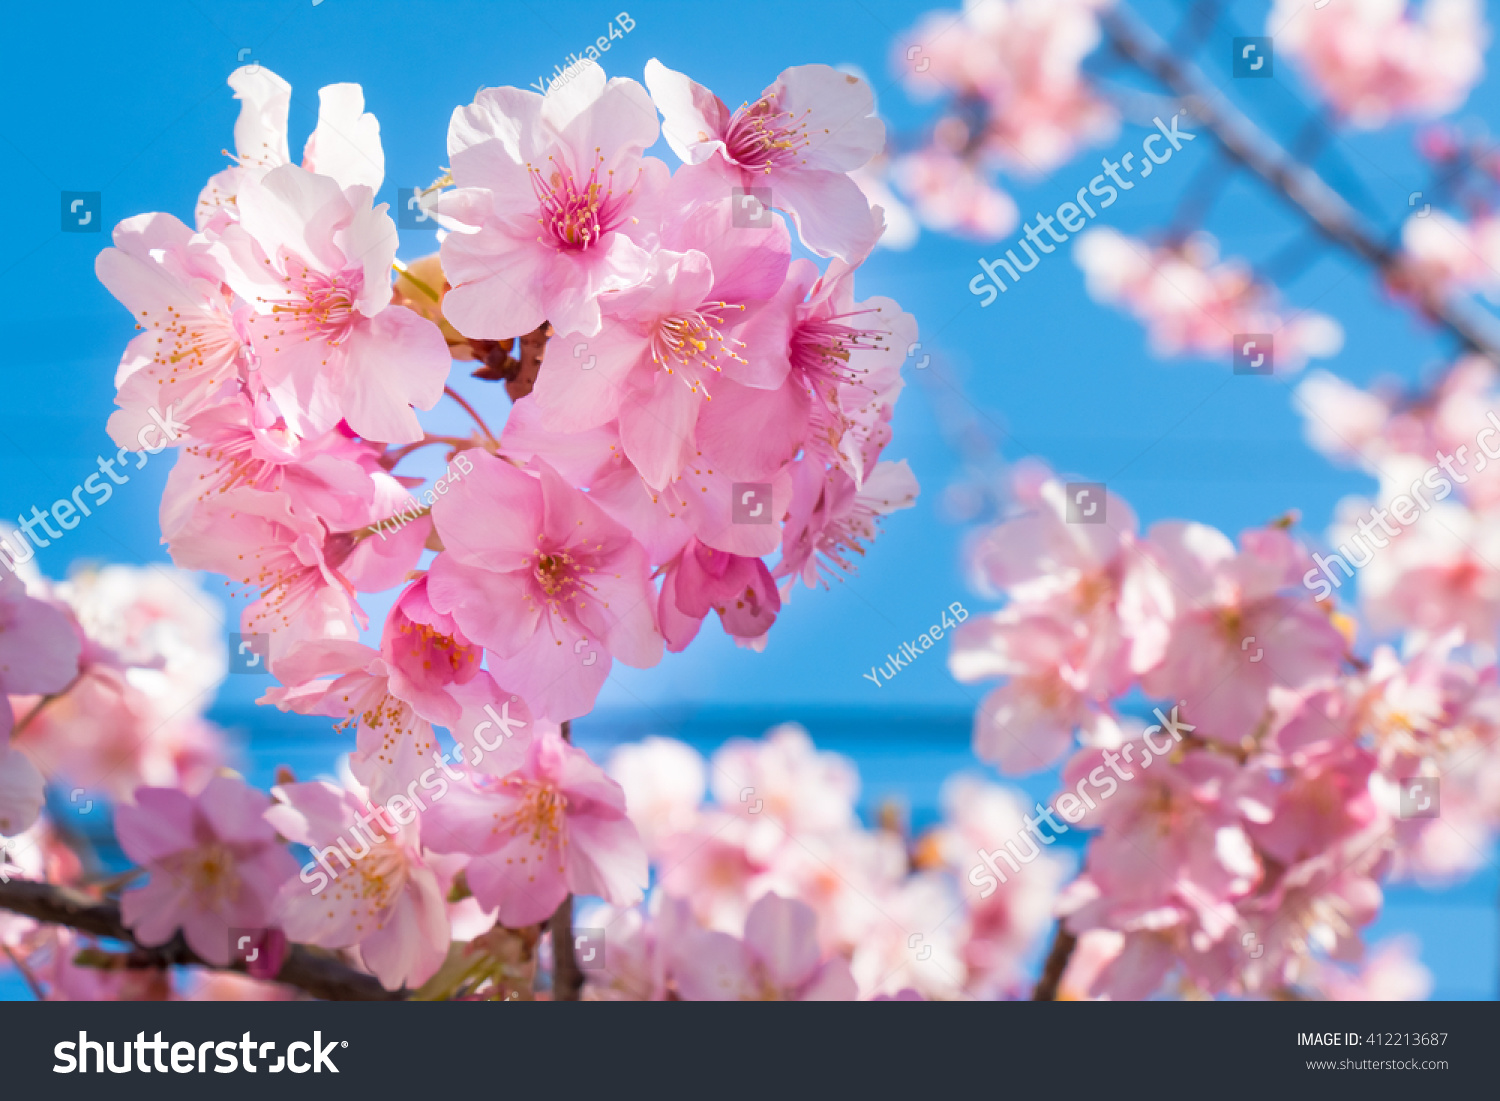 Pink Sakura Cherry Blossom Is The Most Beautiful Flower In Japan